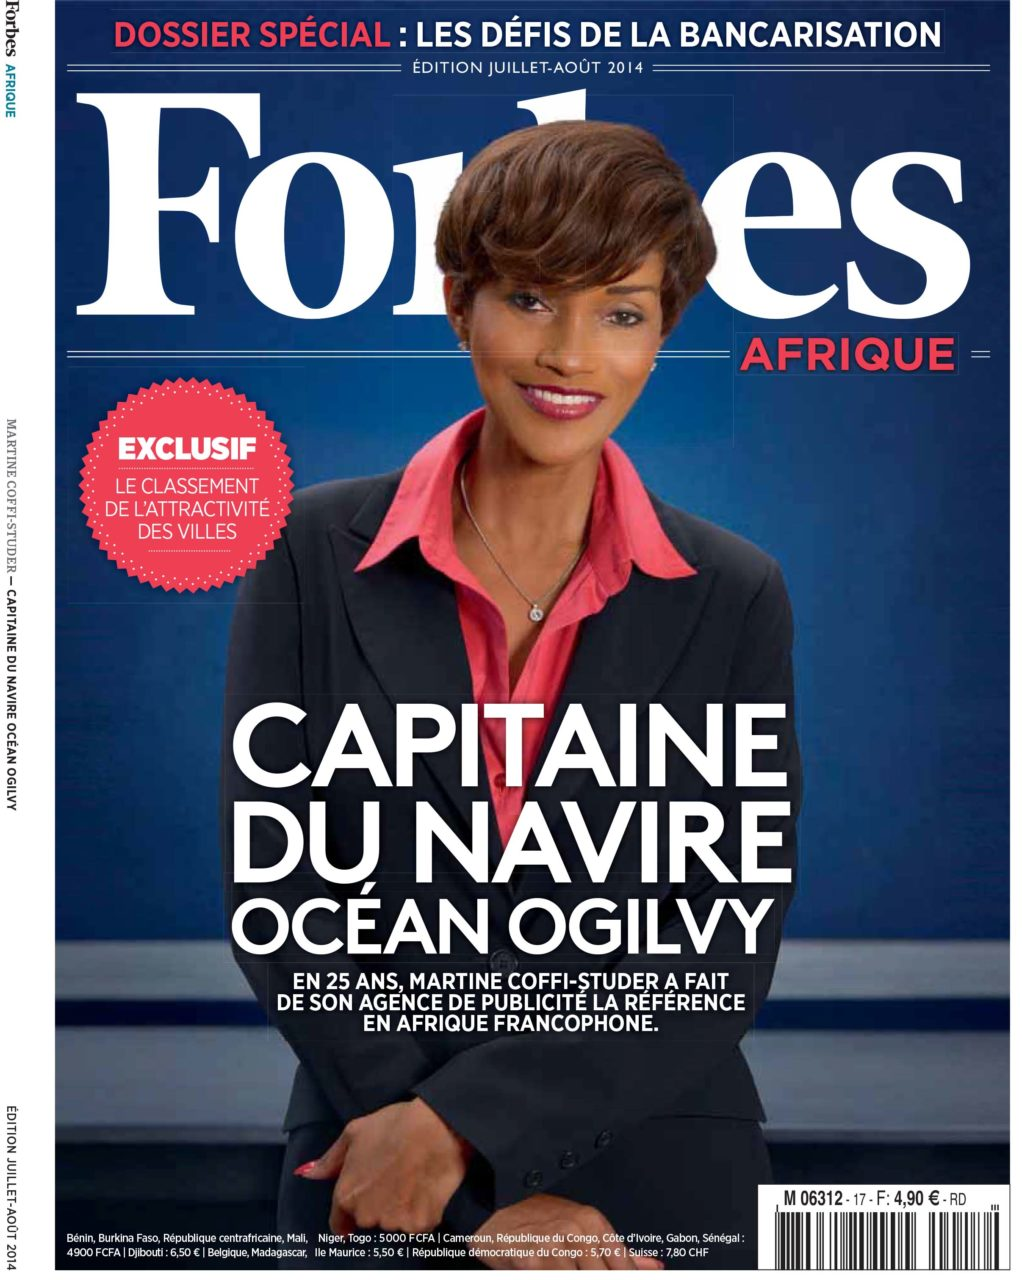 https://www.saota.com/wp-content/uploads/2018/01/SAOTA__INT_Forbes-Afrique_-Radisson-Blu-Dakar_2014_FOR017_MULTI_REDUX-1_cover.jpg